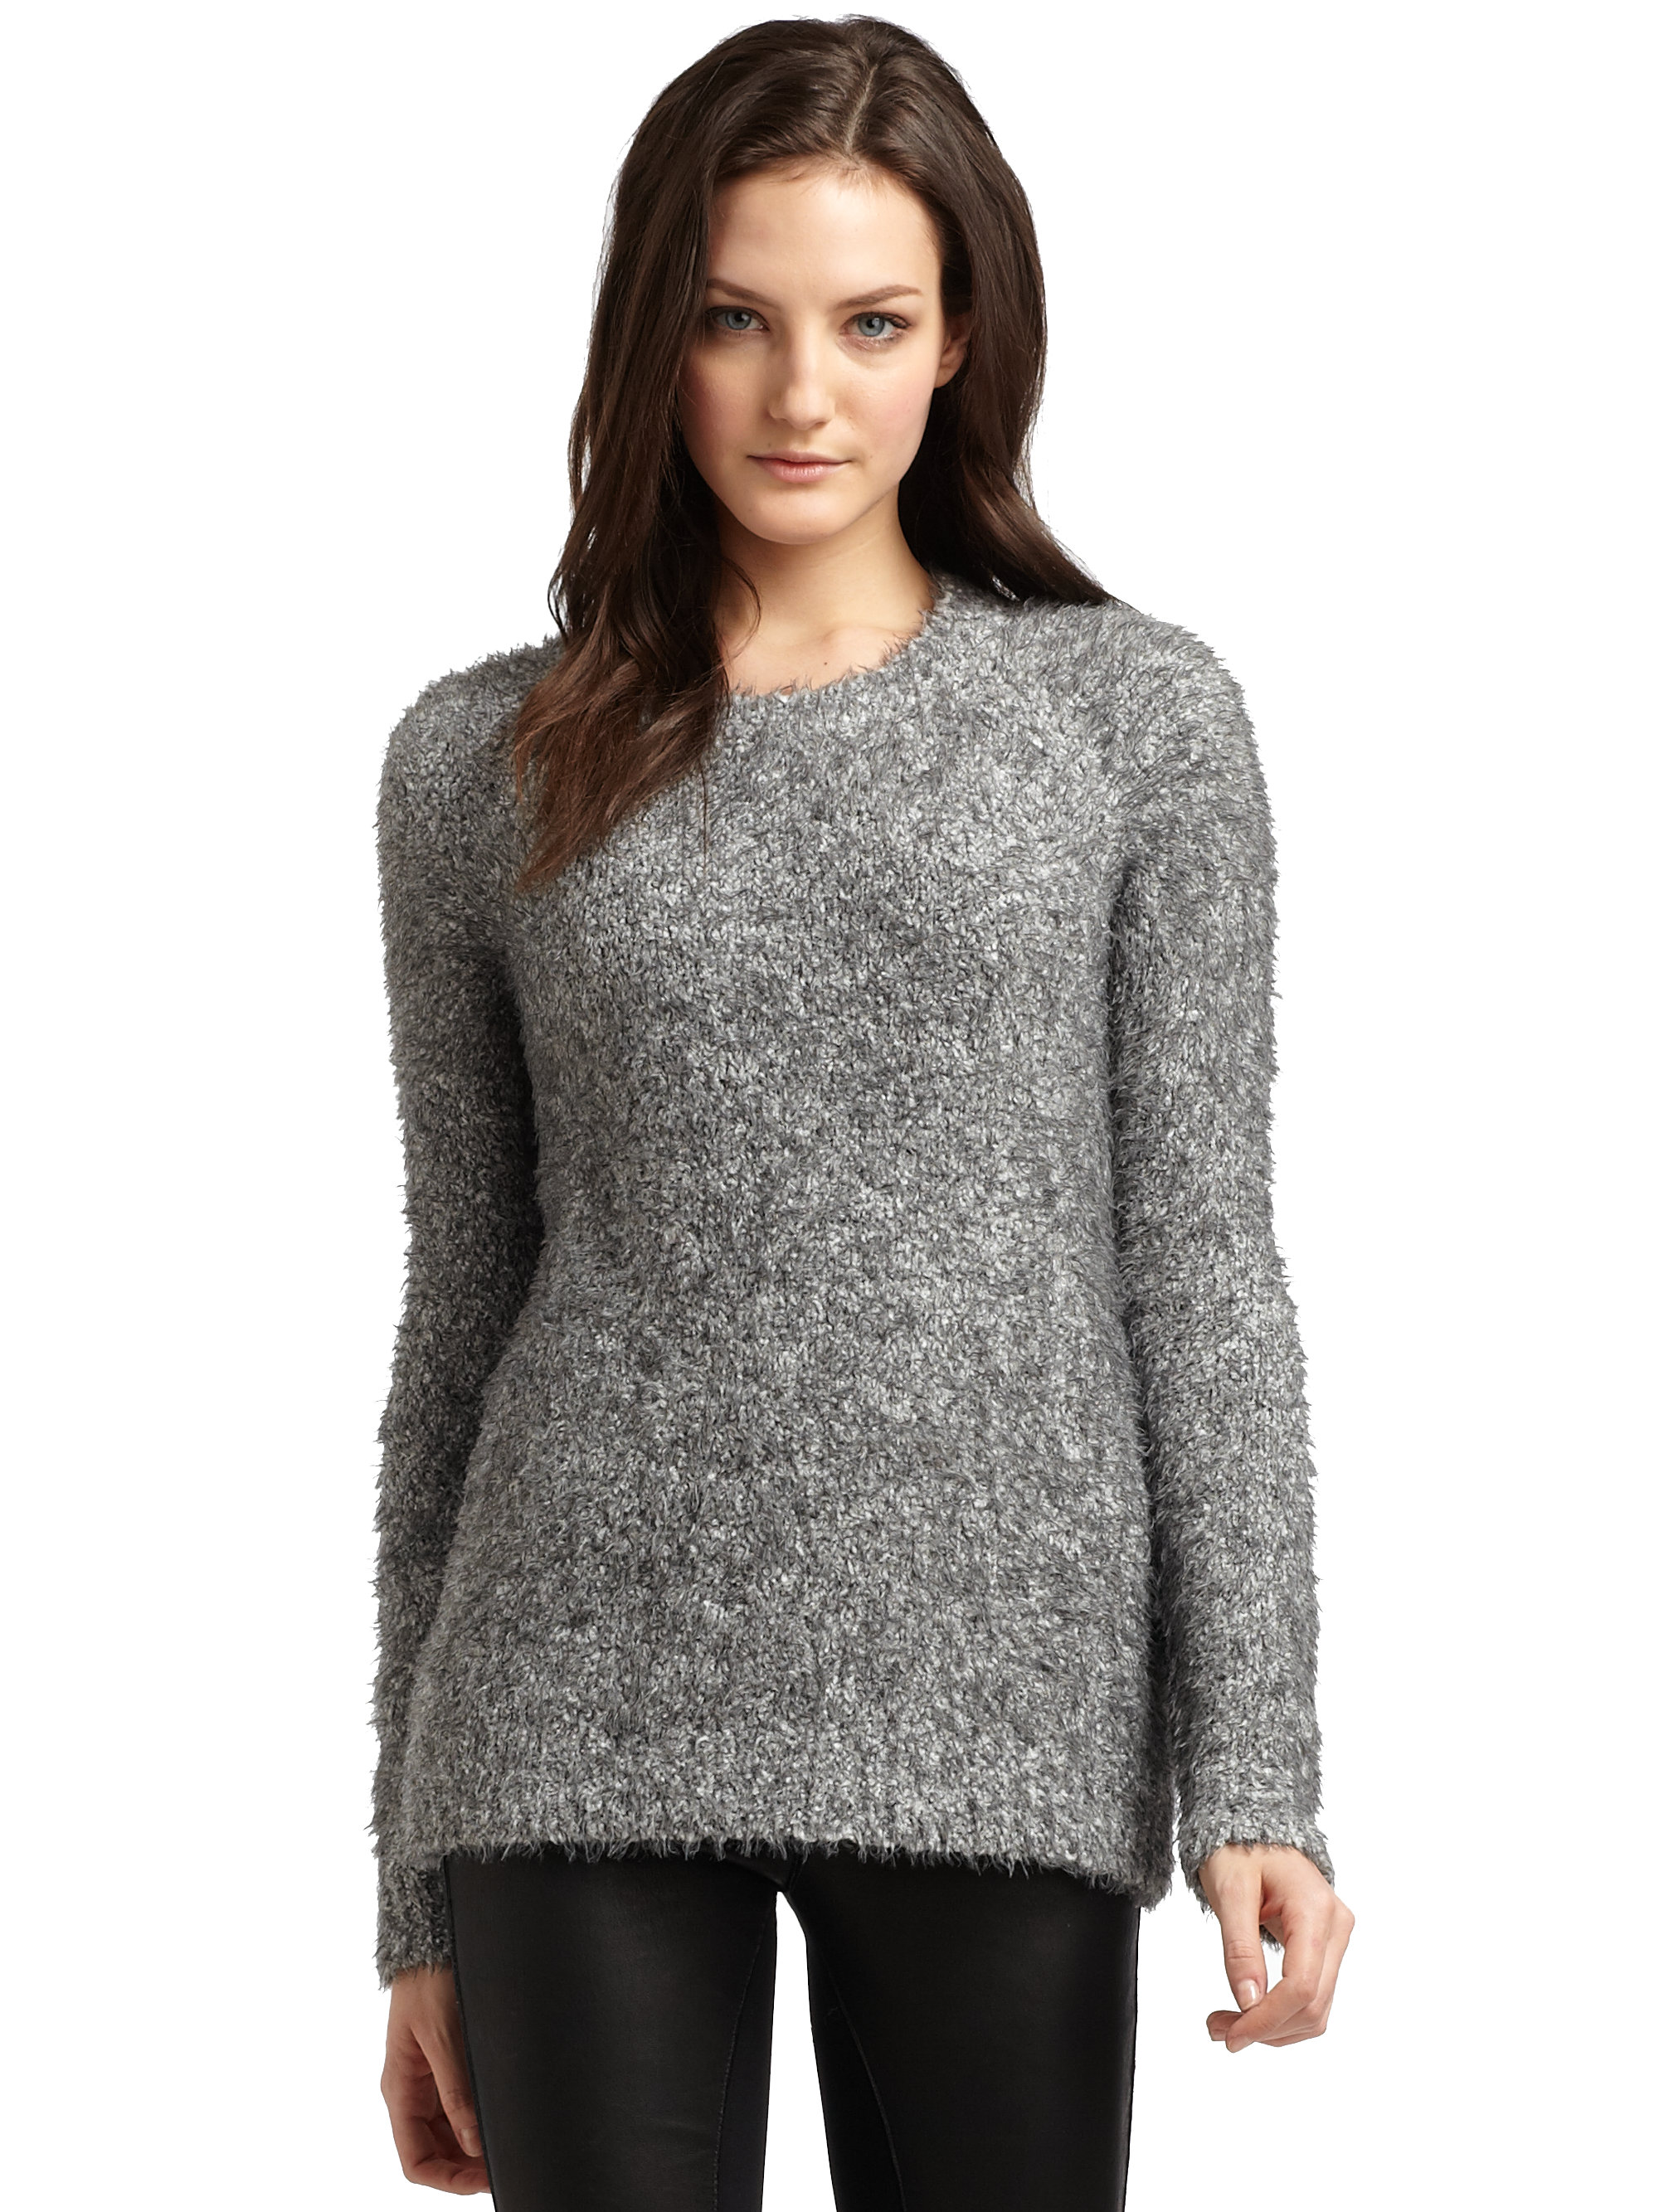 Elizabeth and james Fuzzy Raglansleeve Tunic Sweater in Gray | Lyst